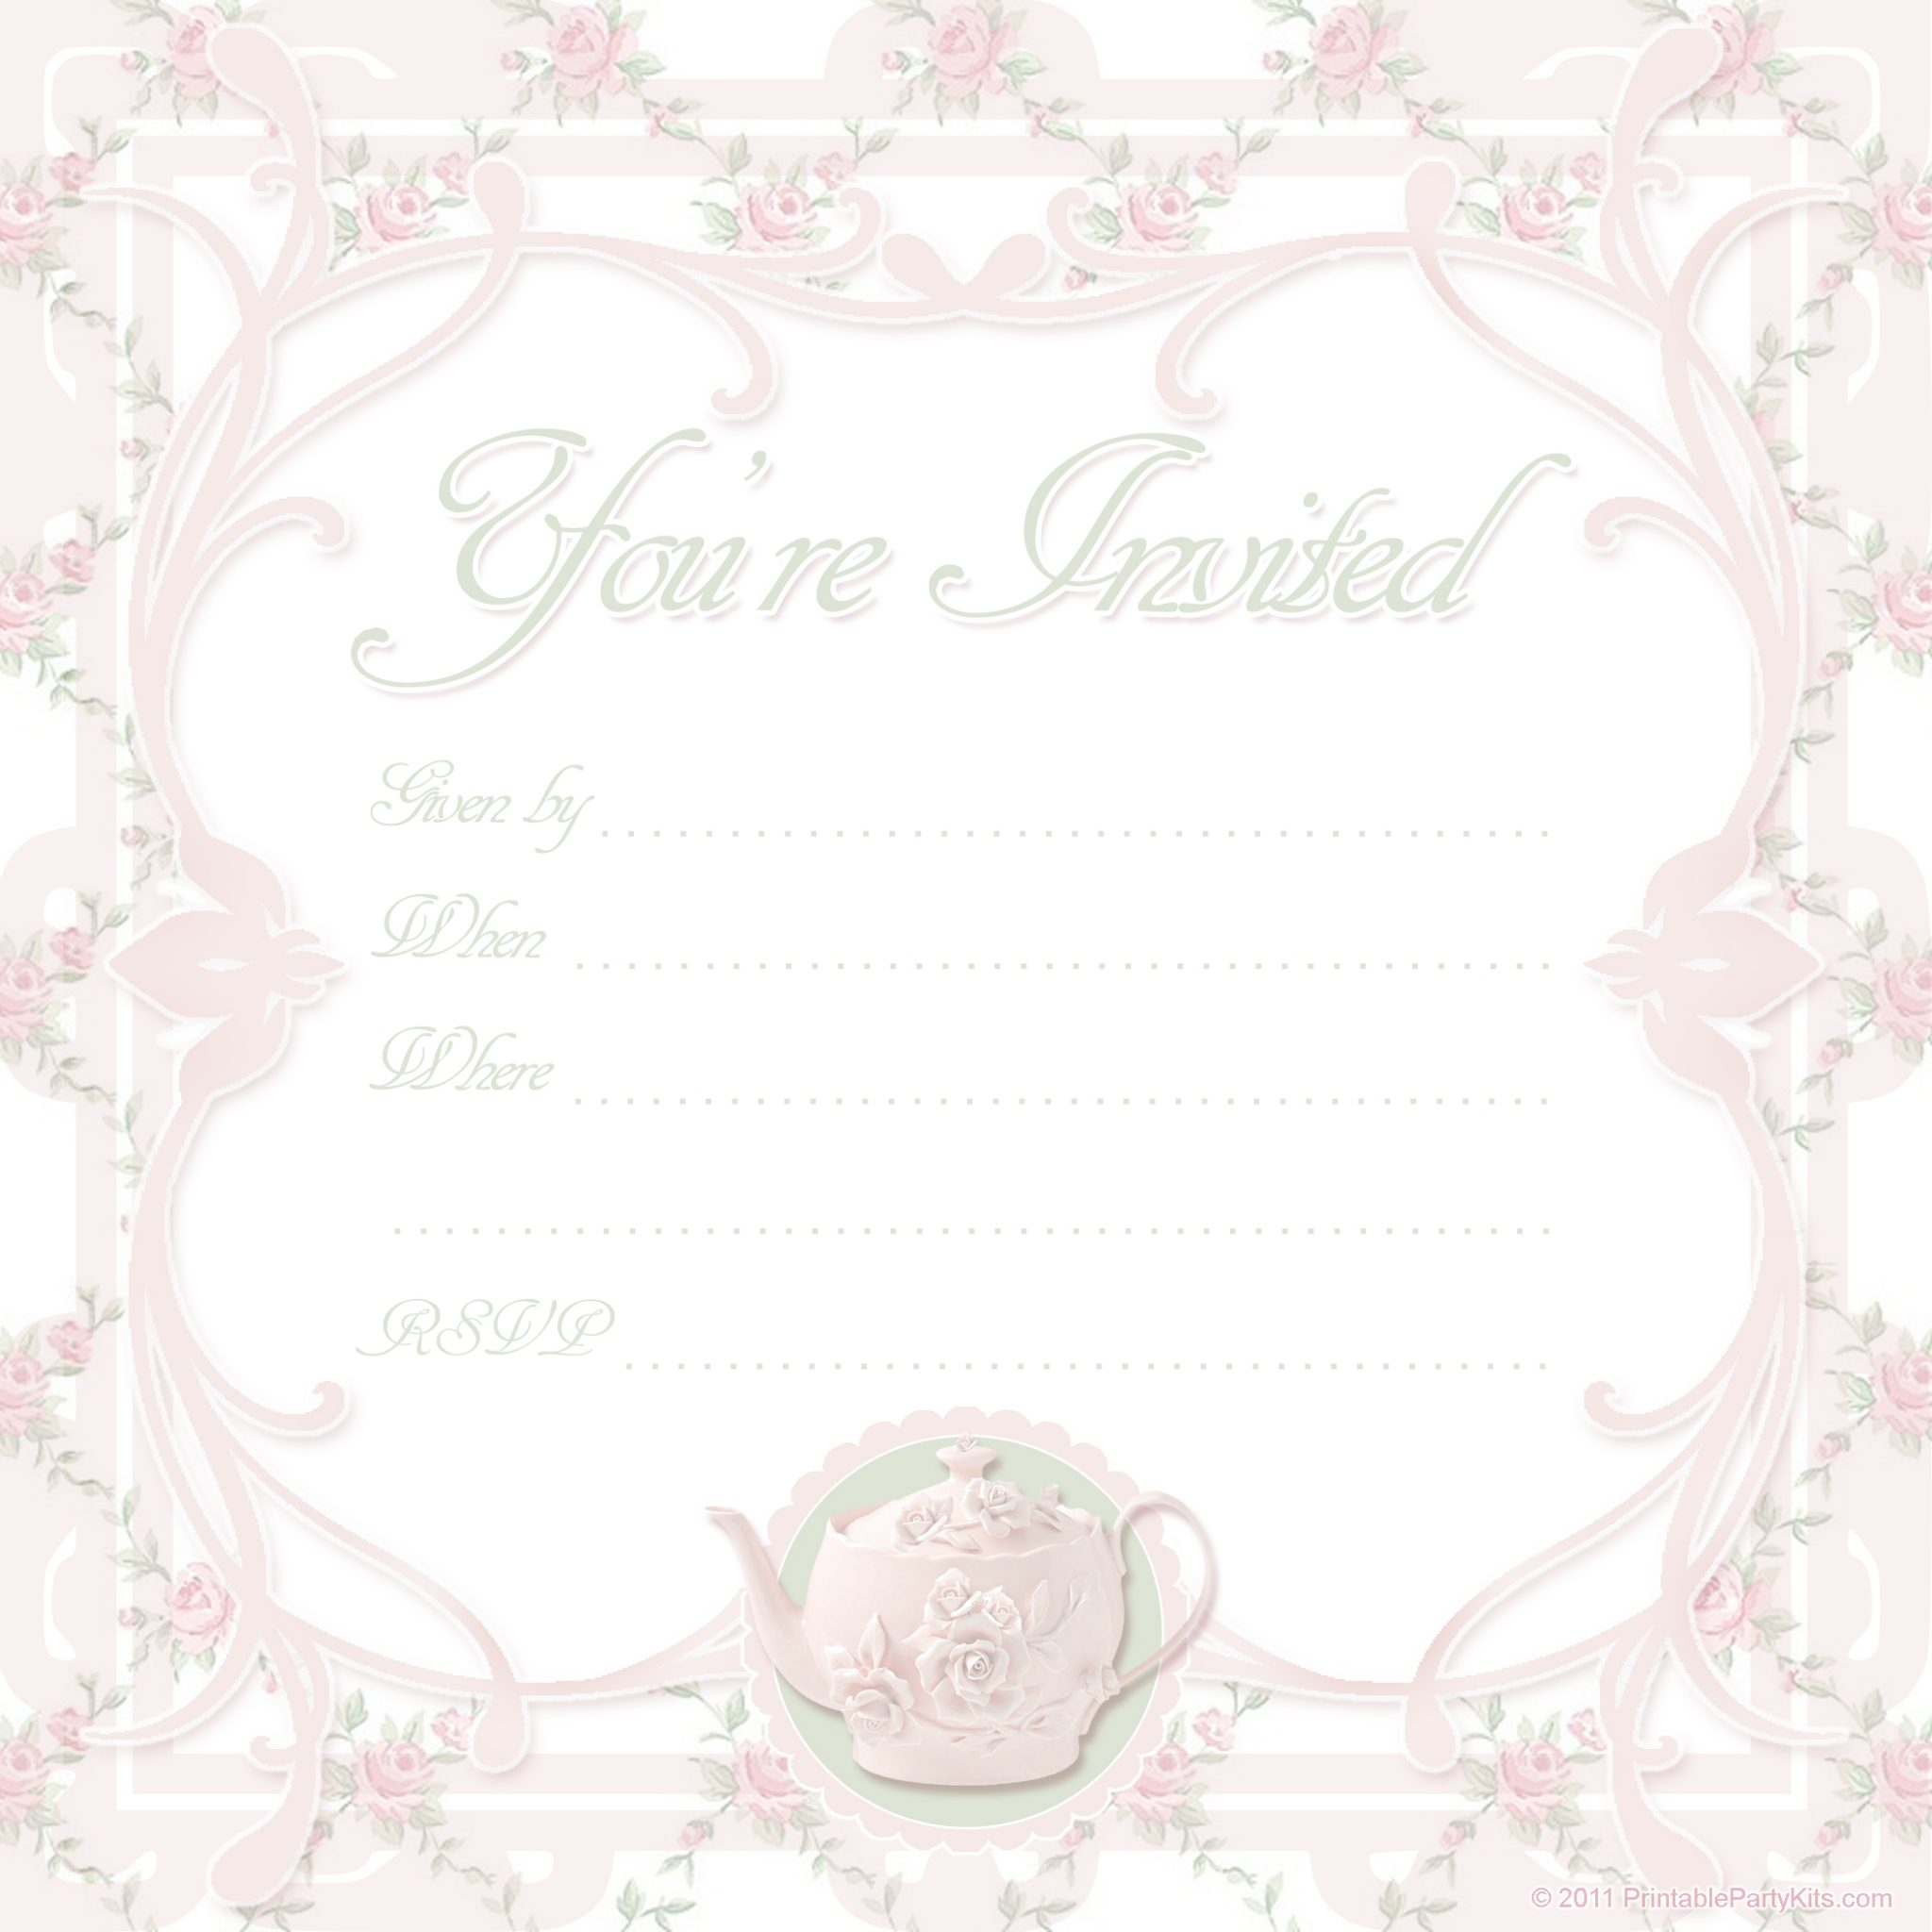 Free Printable Tea Party Invite Template | Printable Party ...